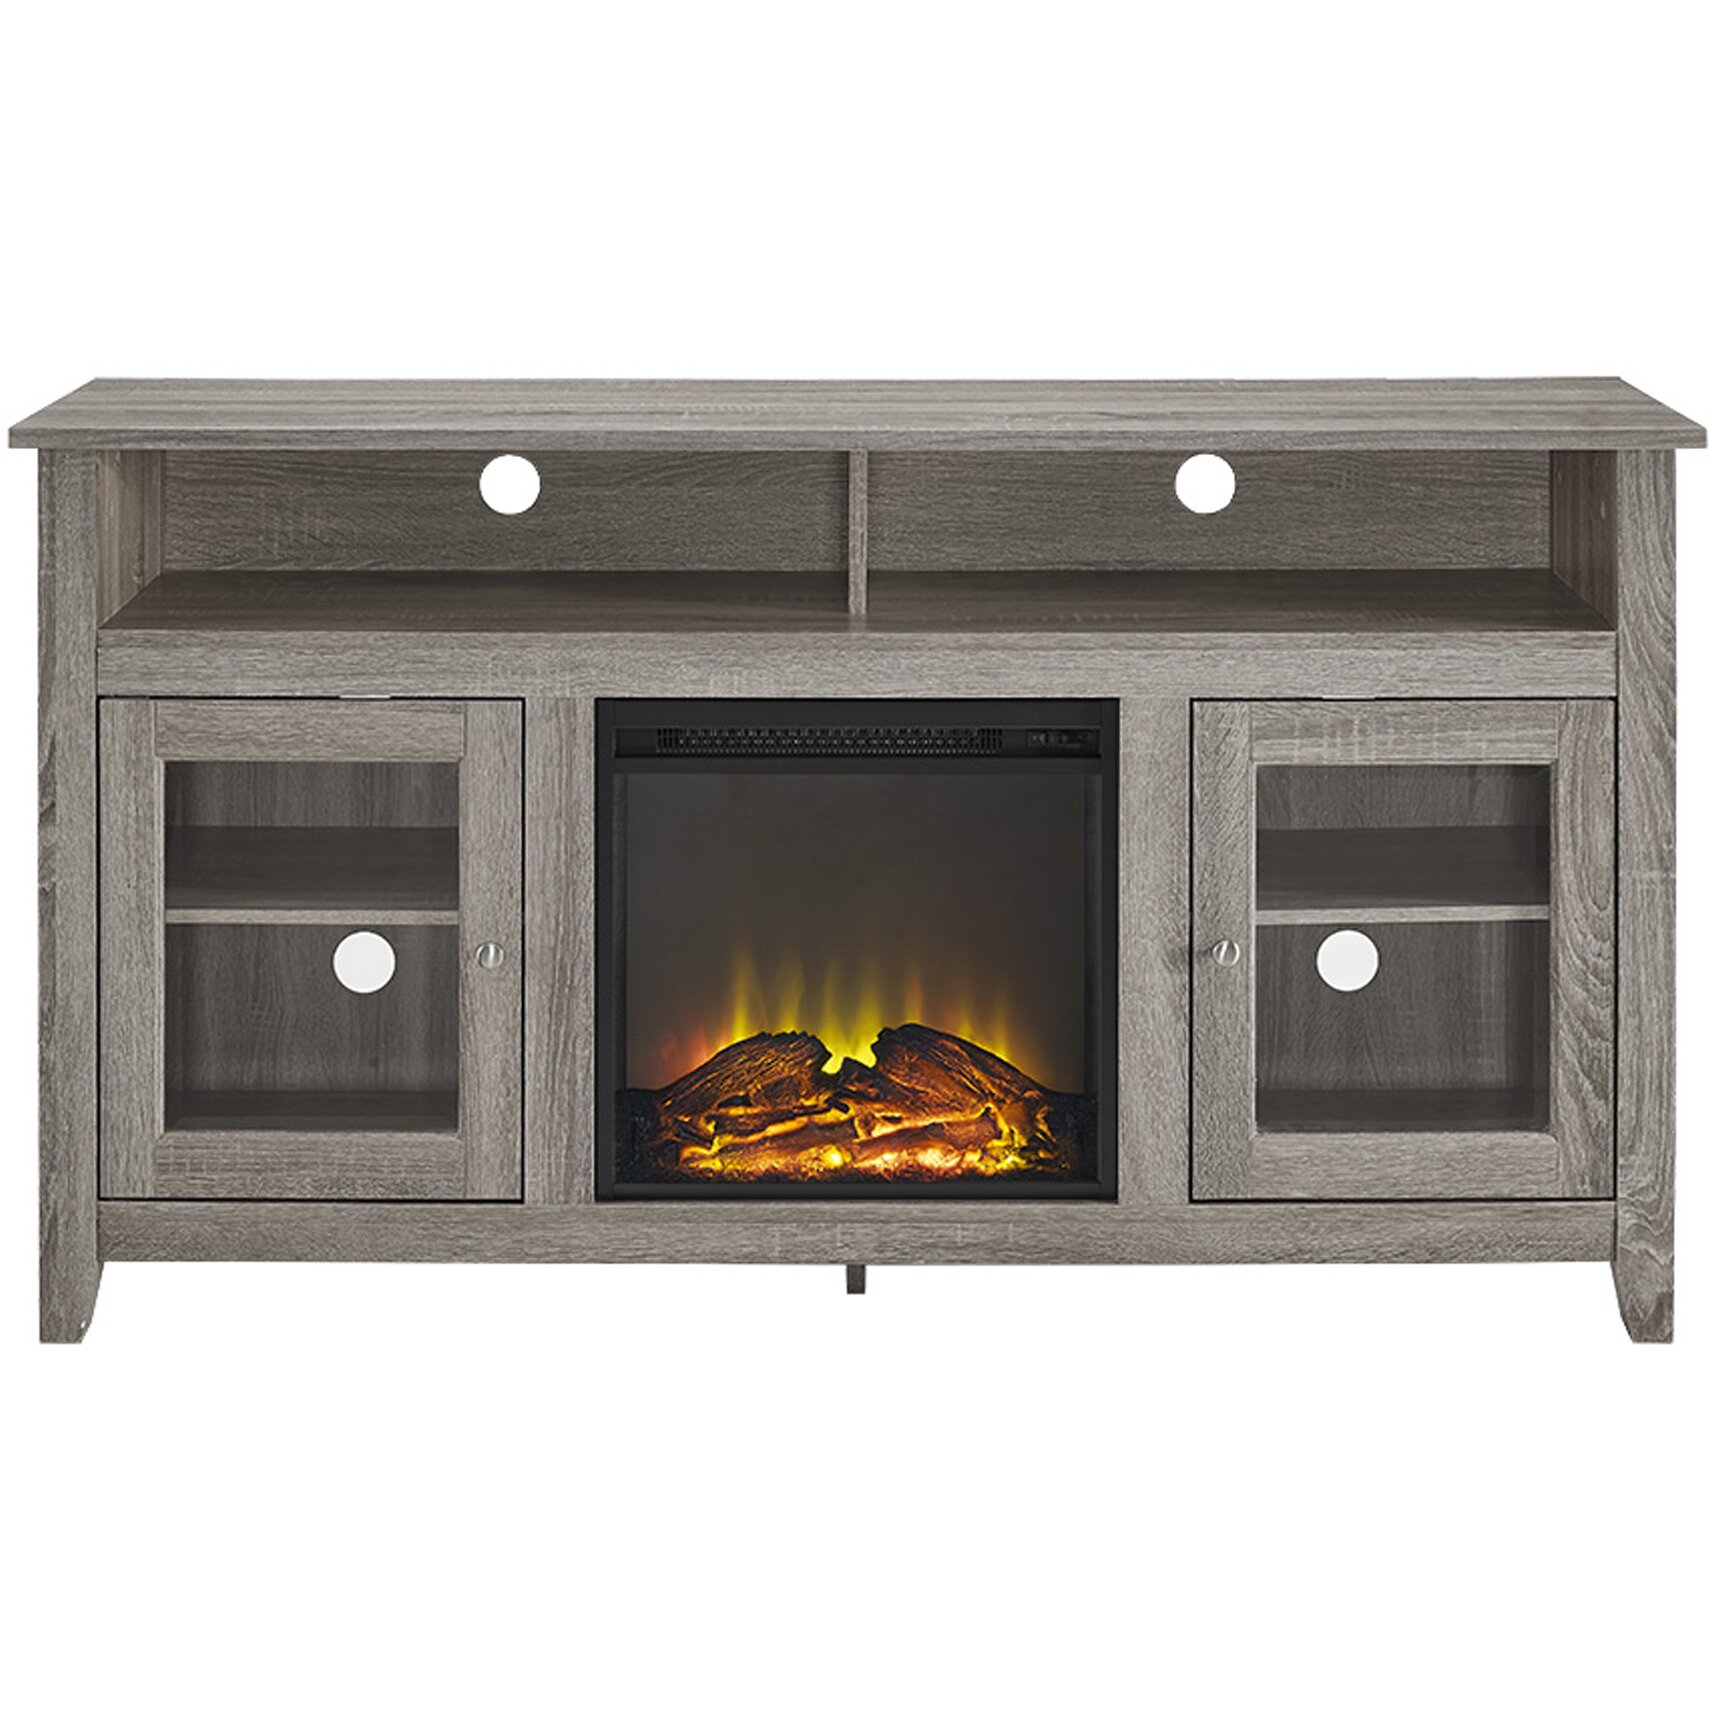 Darby Home Co Isabel Highboy 58 Tv Stand With Electric Fireplace Reviews